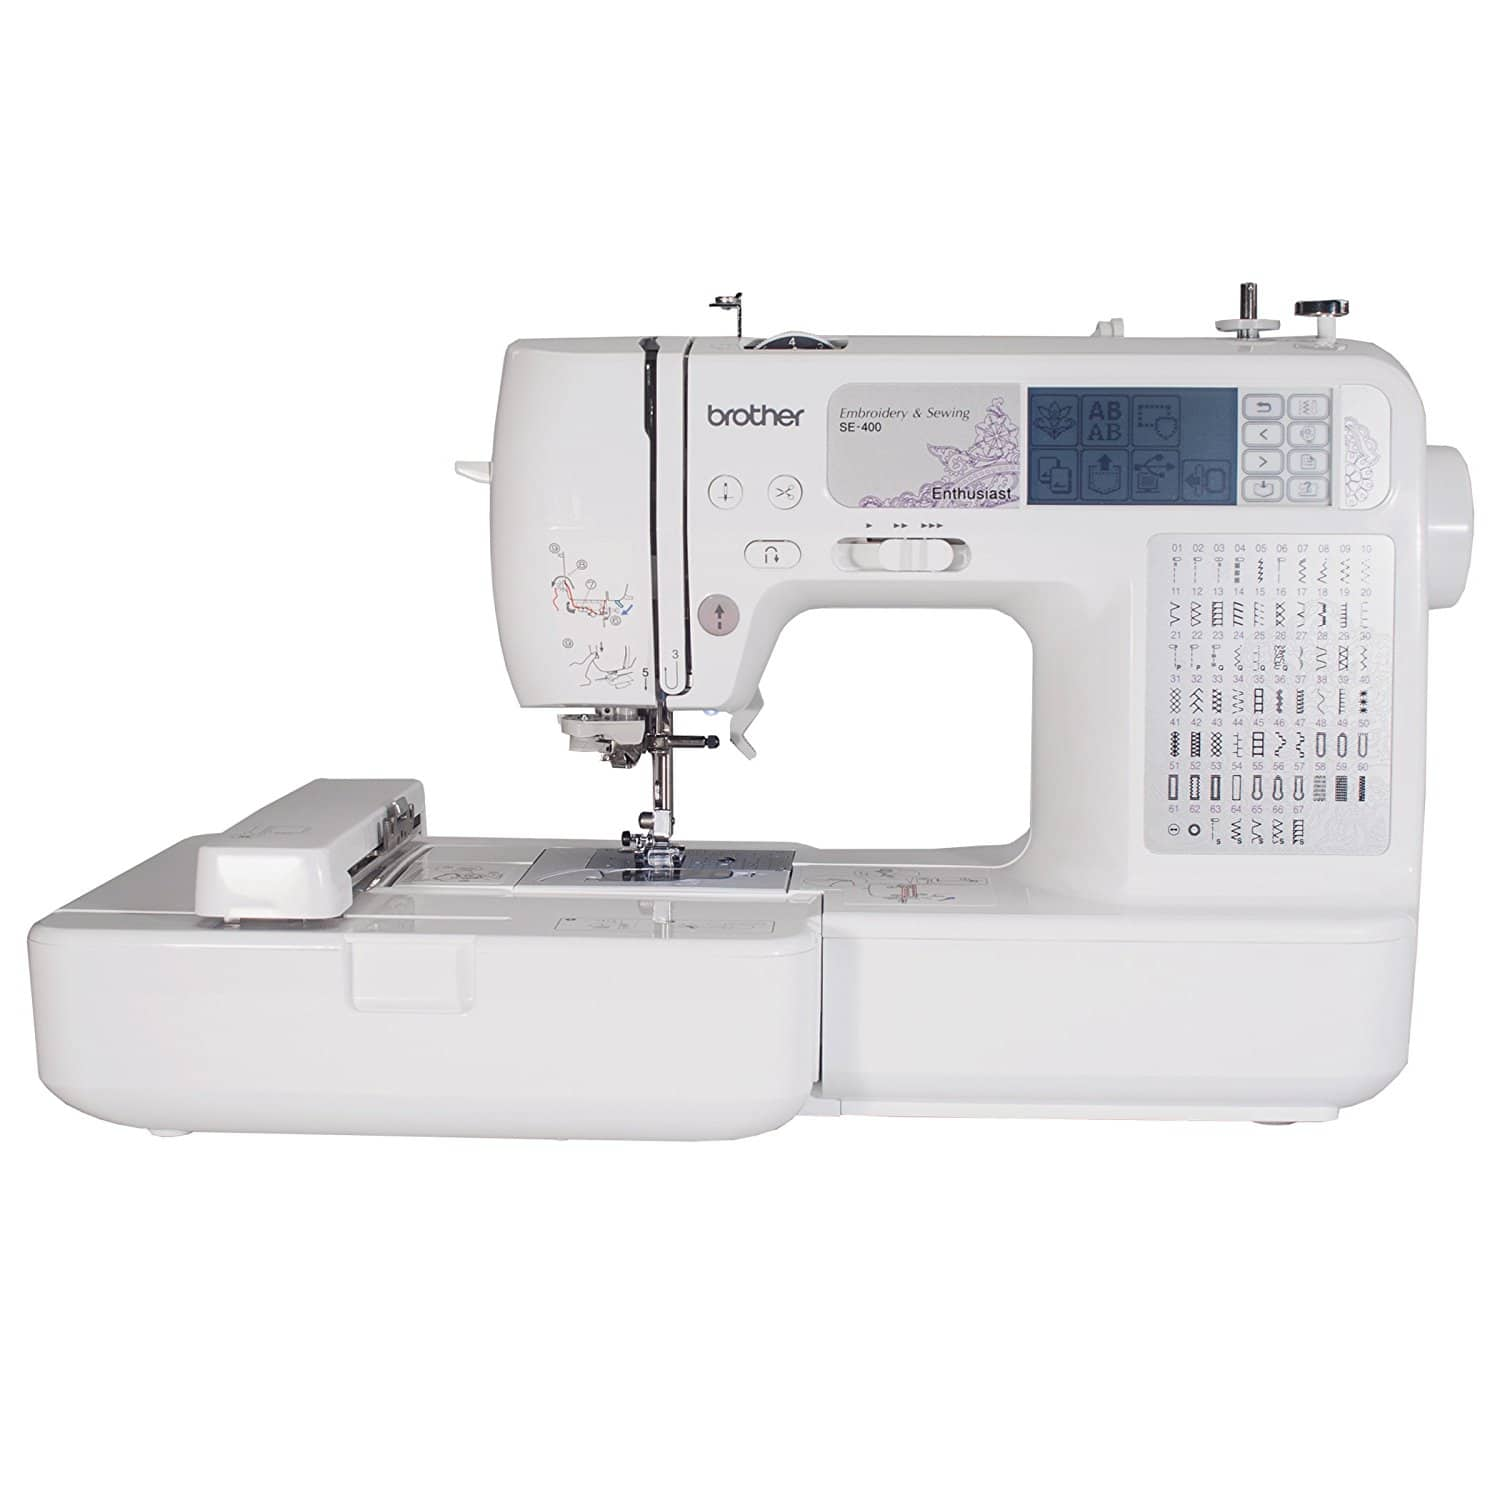 Brother SE400 Computerized Sewing And 4x4 Embroidery Machine - Slickdeals.net